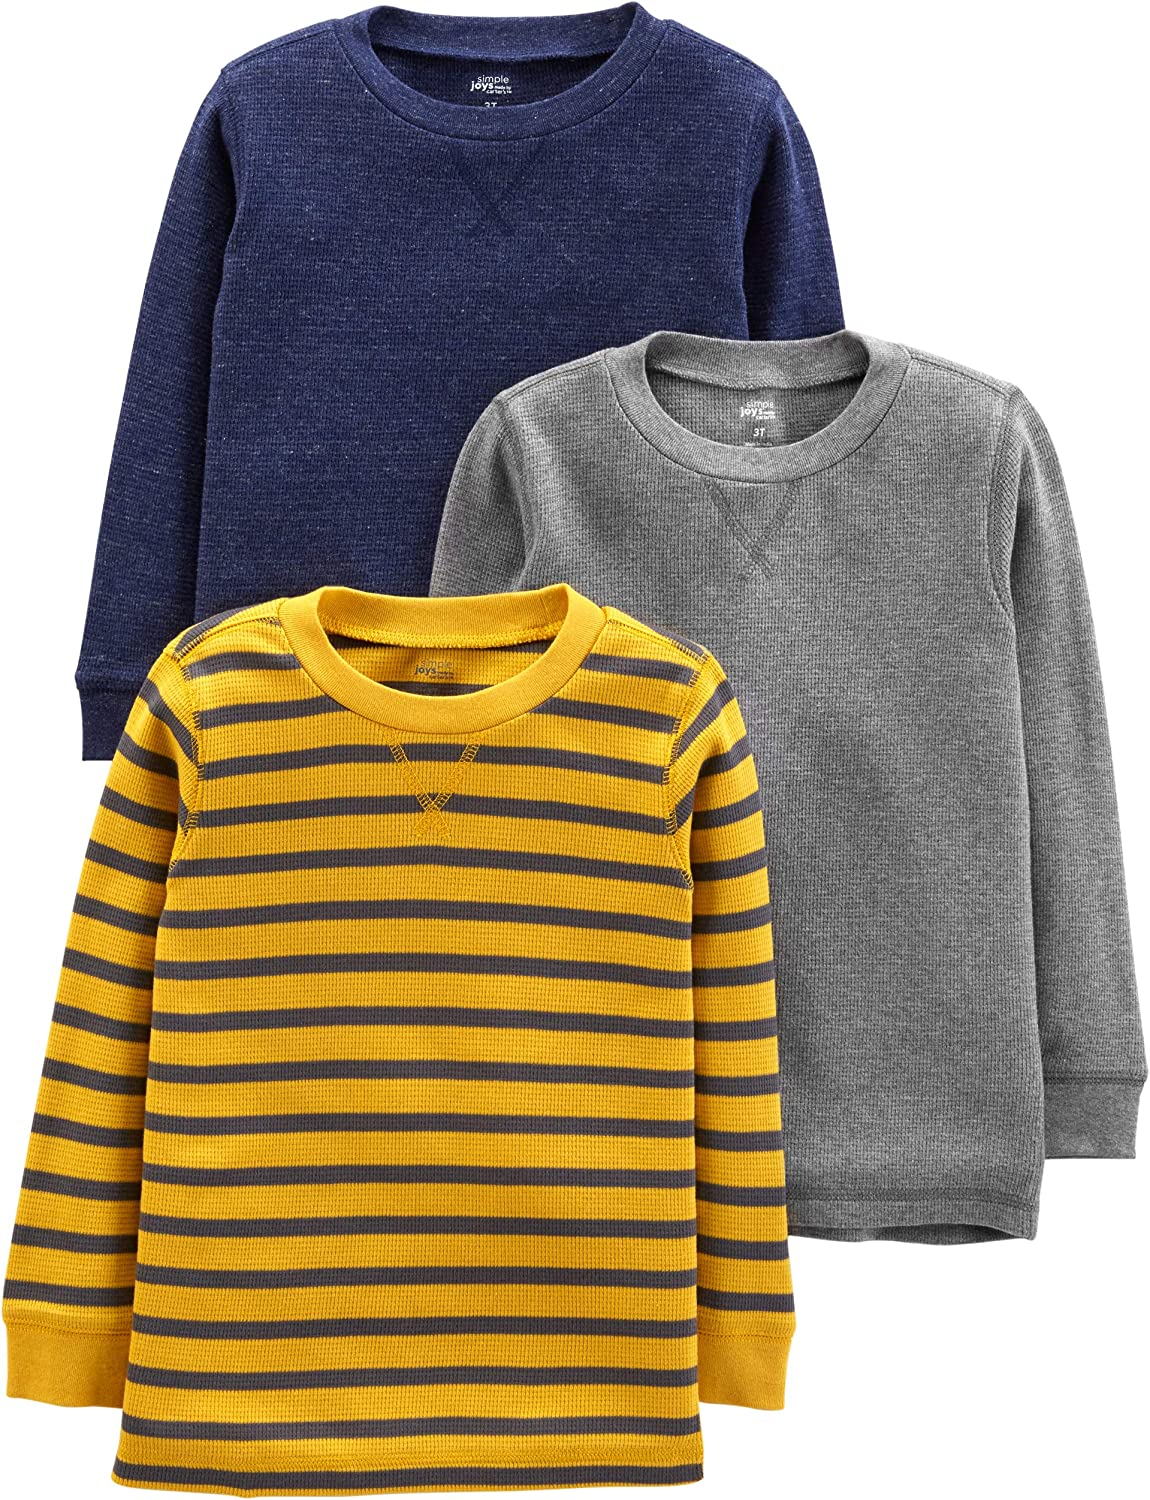 Simple Joys by Carter's Boys' 3-Pack Thermal Long Sleeve Shirts